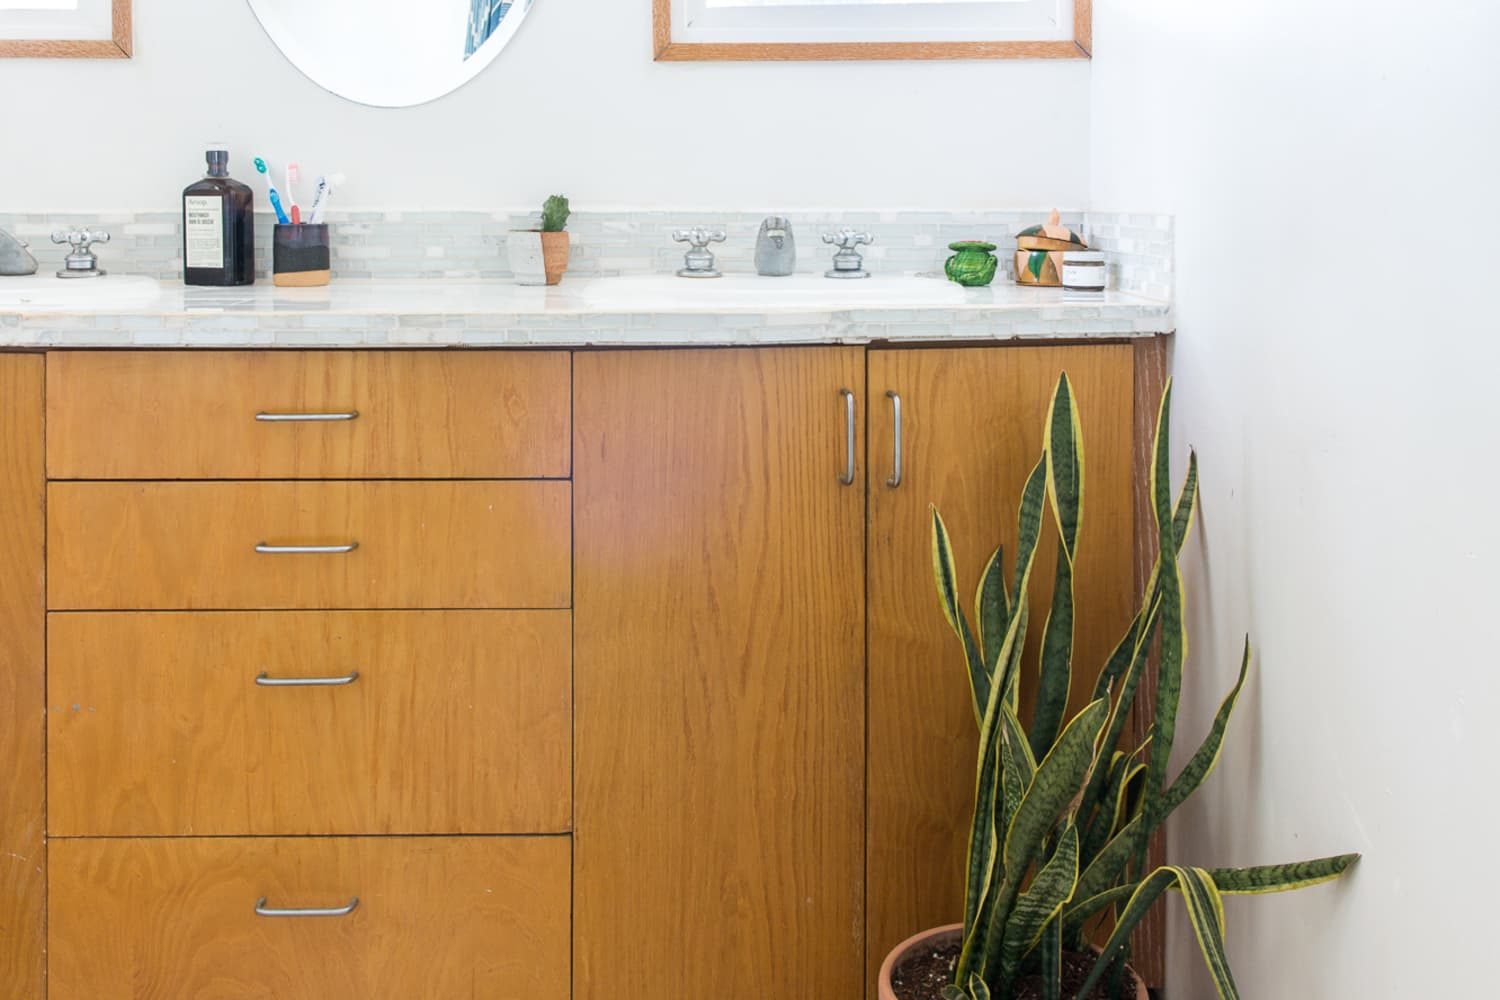 The Unexpected Furniture Item That's Popping Up in Bathrooms Everywhere